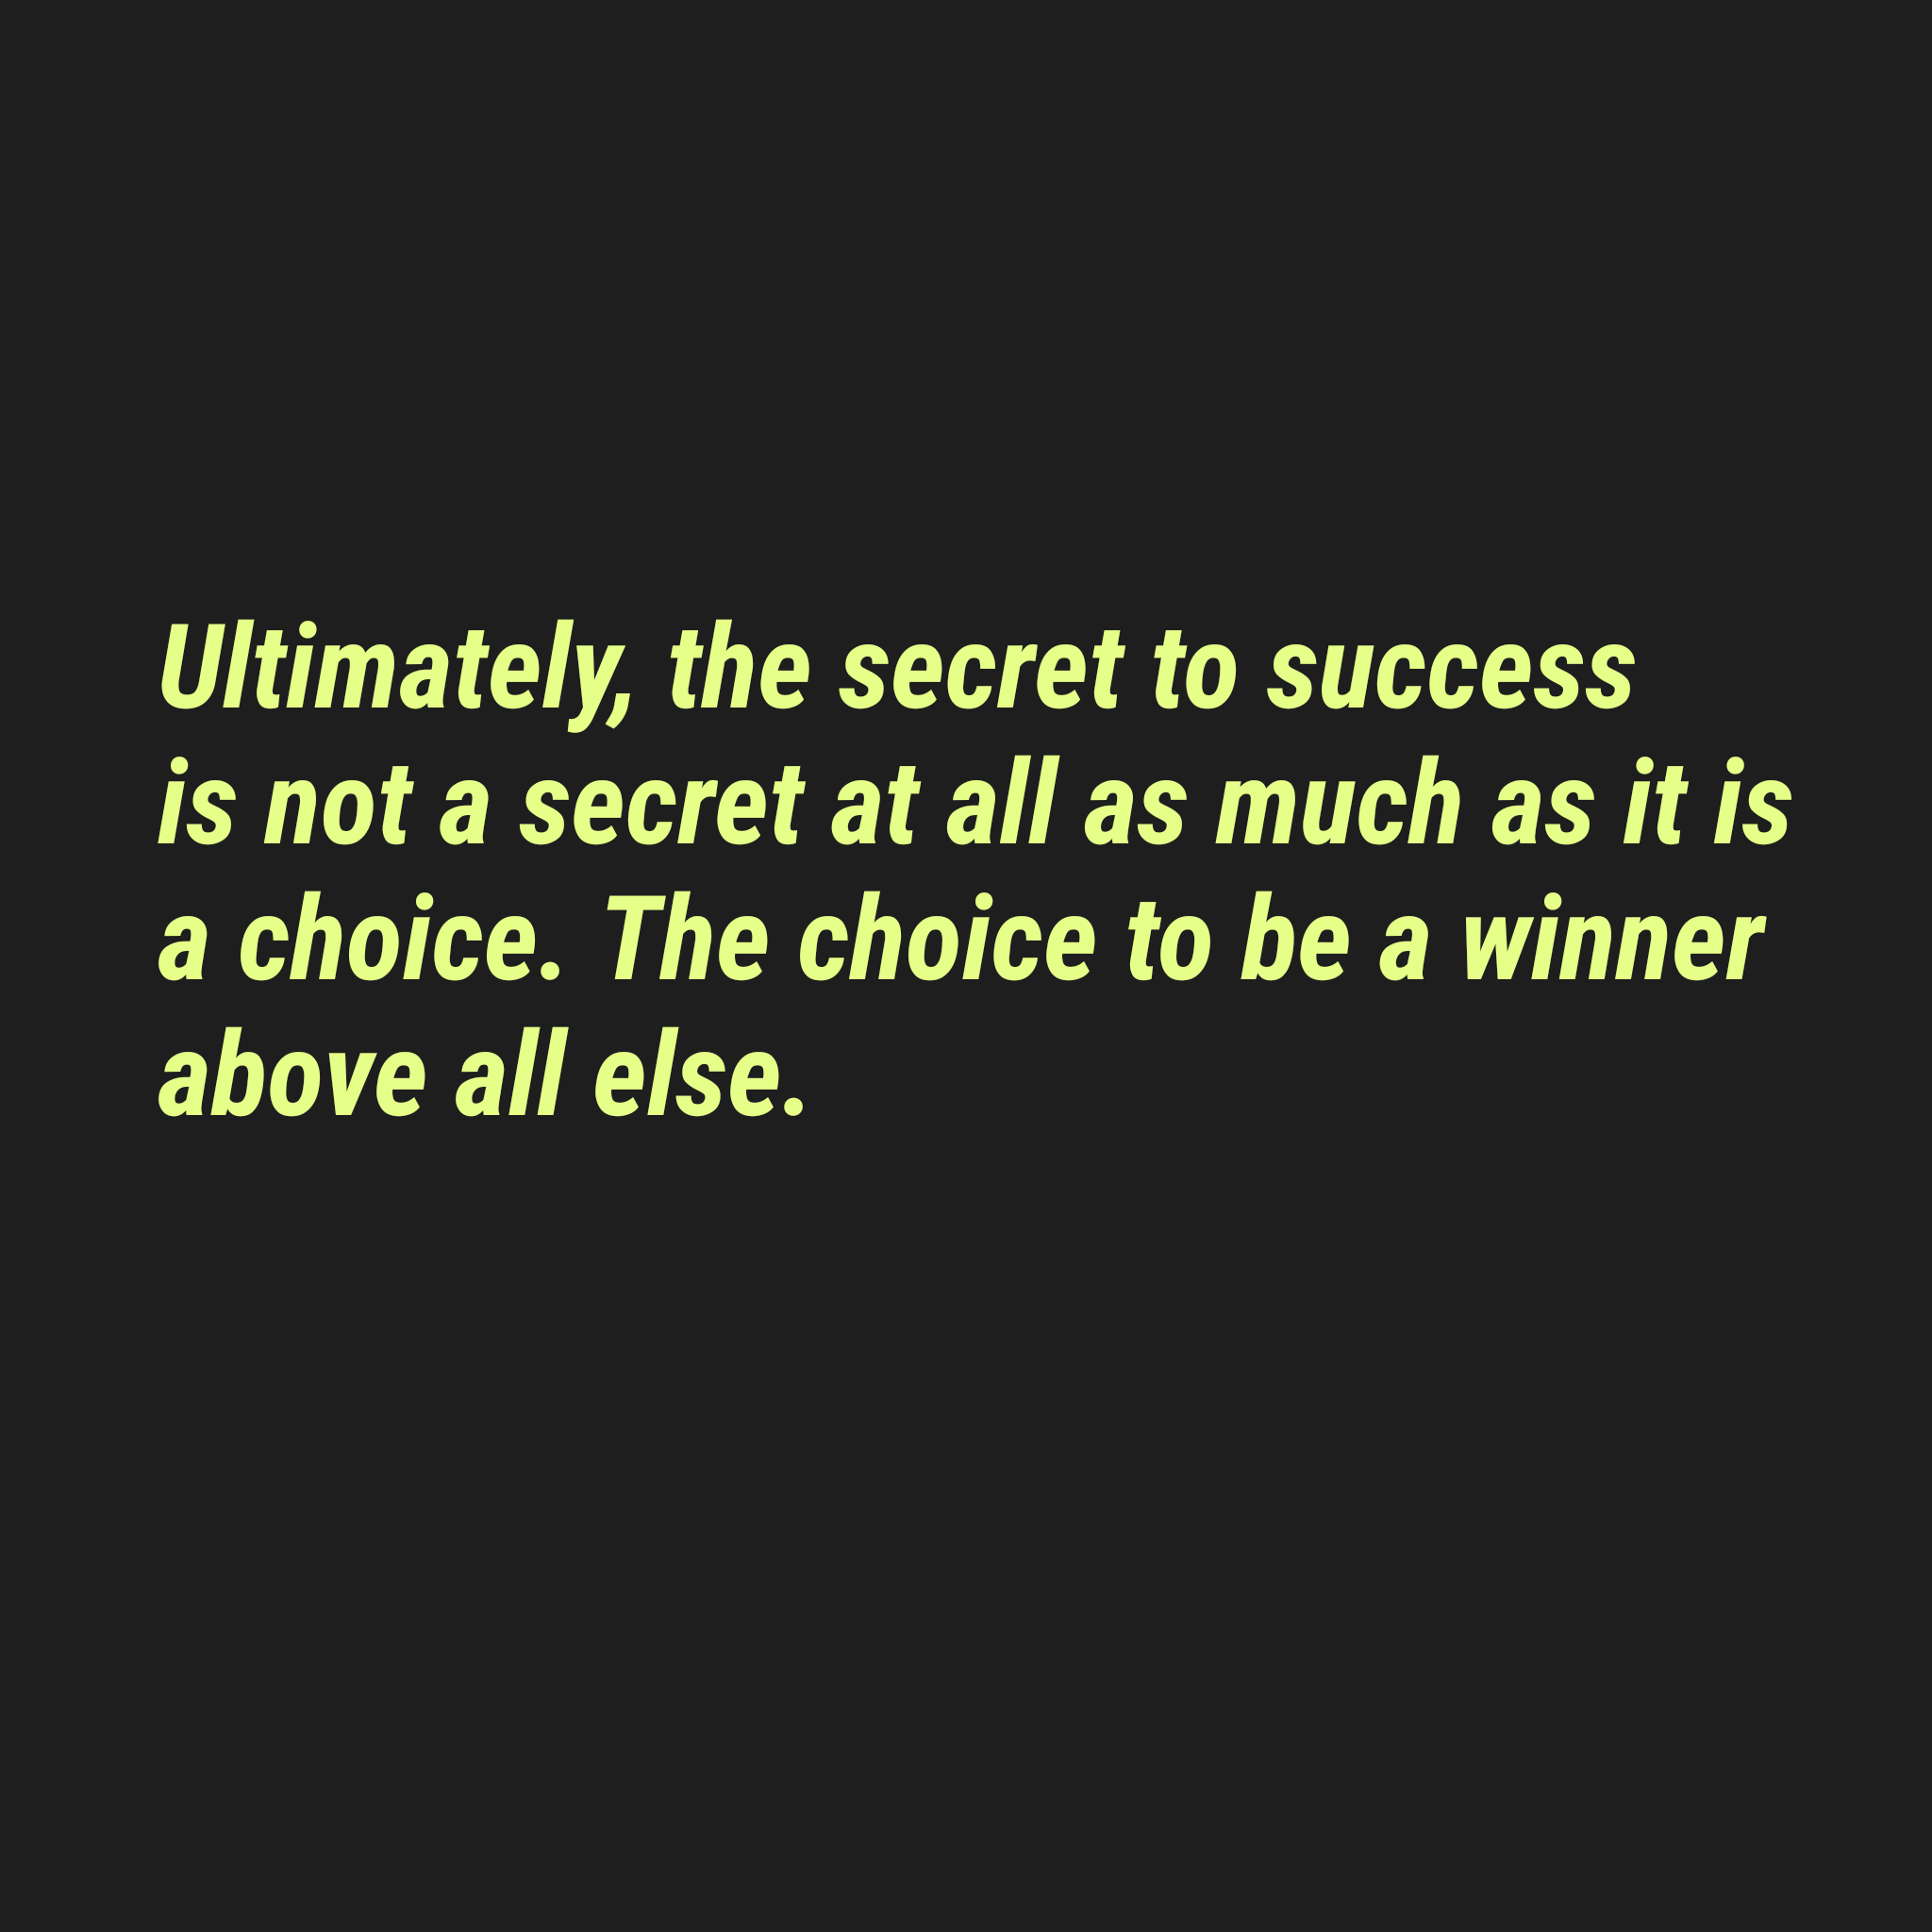 Ultimately, the secret to success is not a secret at all as much as it is a choice. The choice to be a winner above all else. https://inspirational.ly